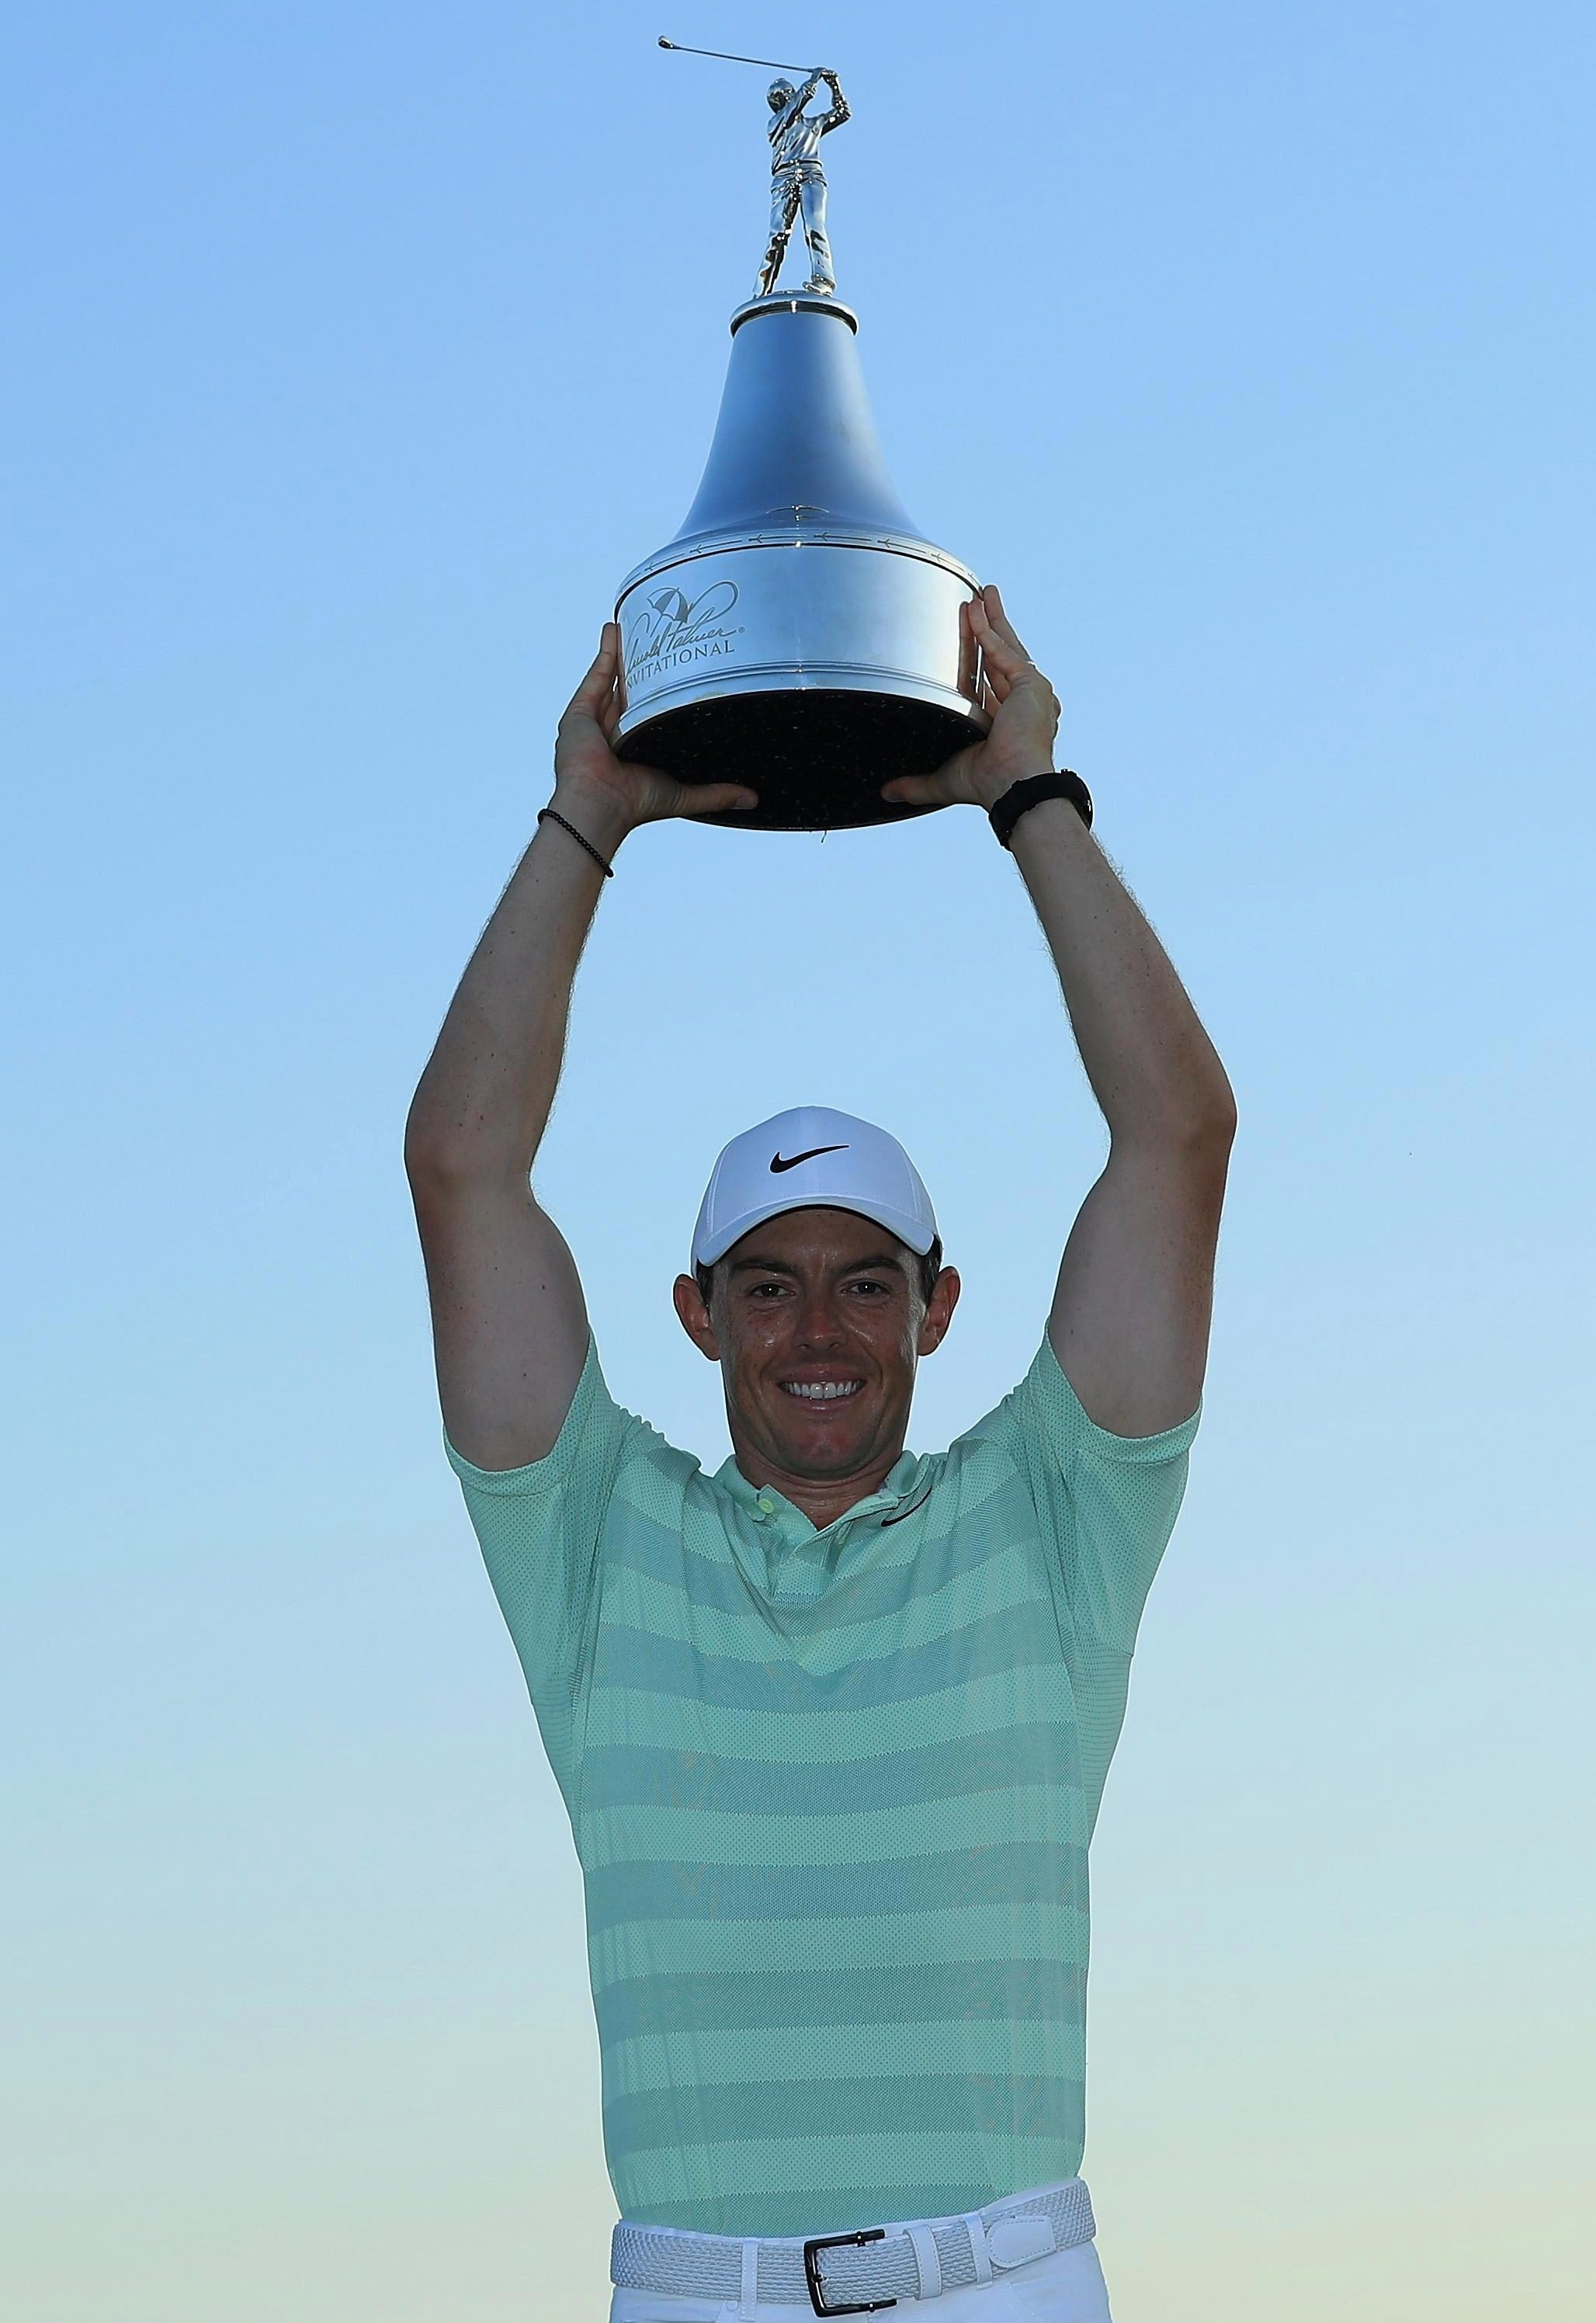 The four-time major winner holds the trophy aloft after his two-shot victory